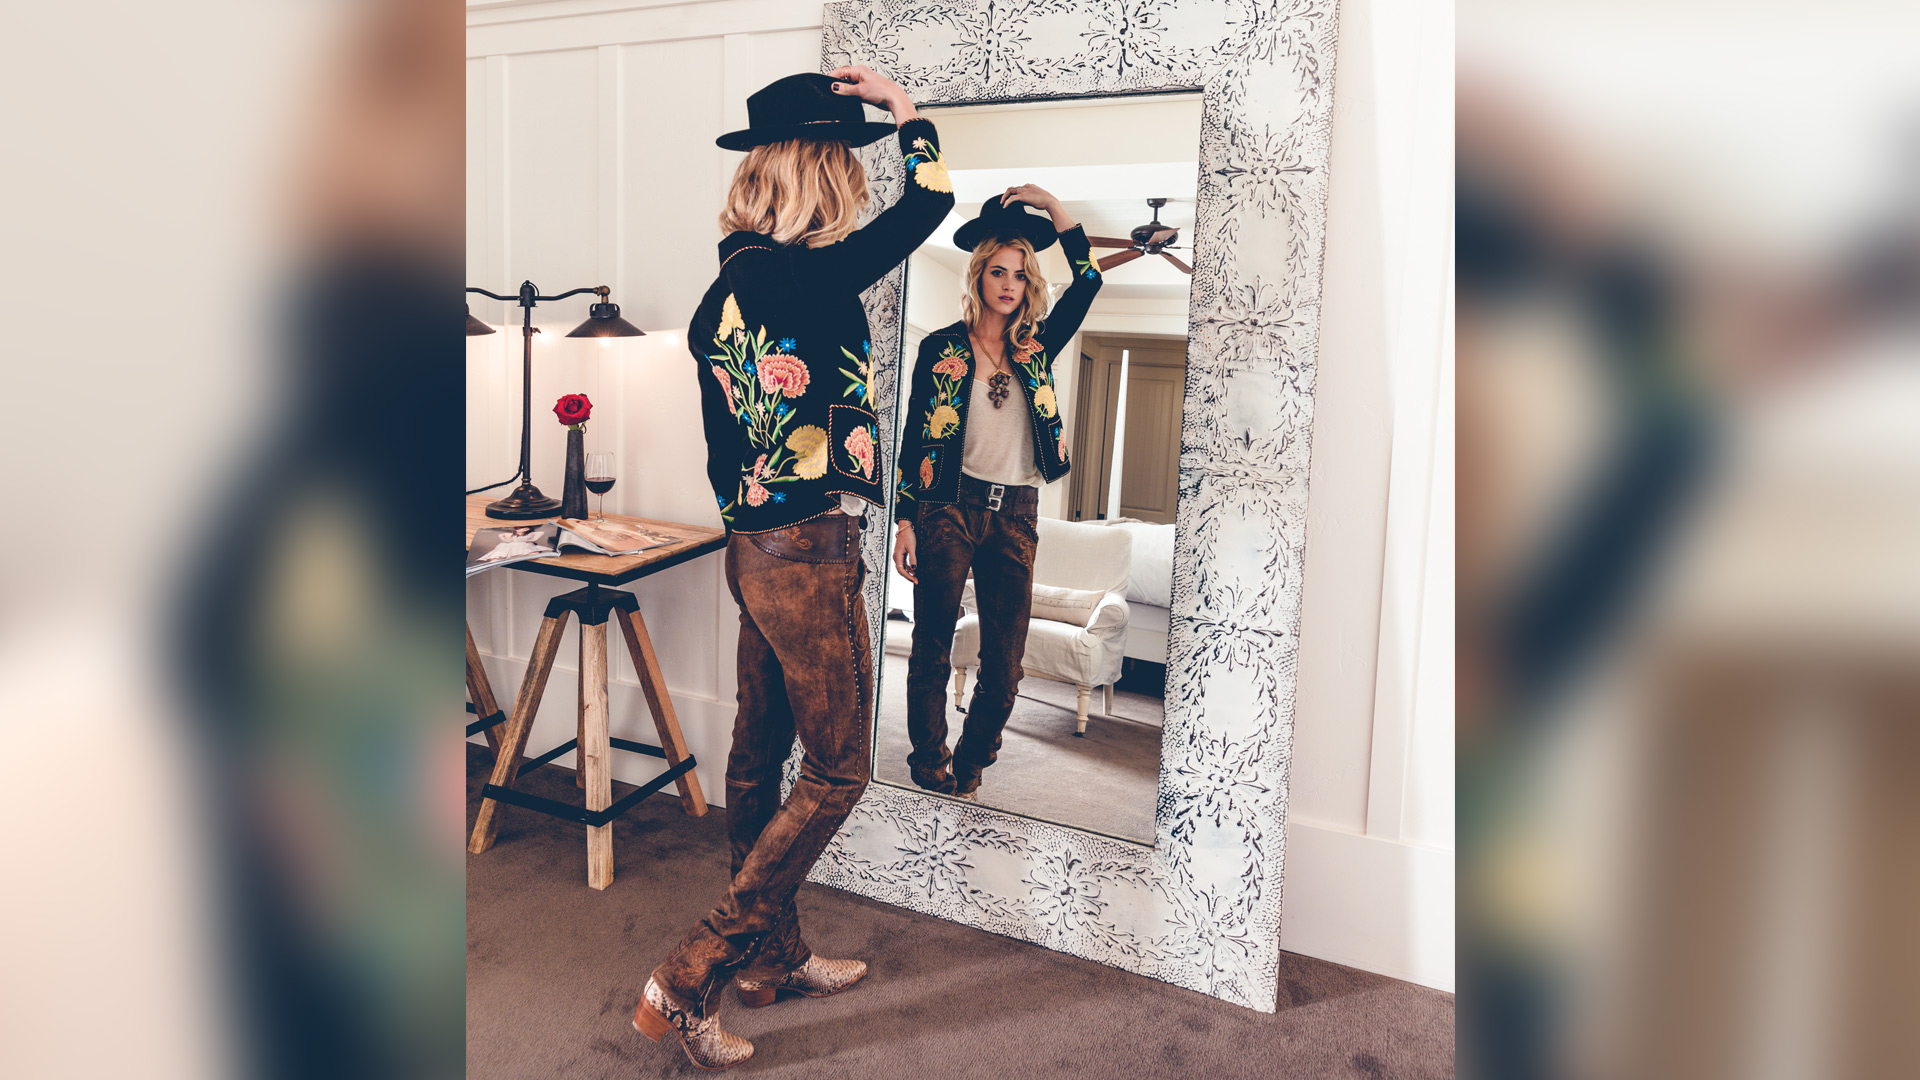 Emily Wickersham as a cowgirl